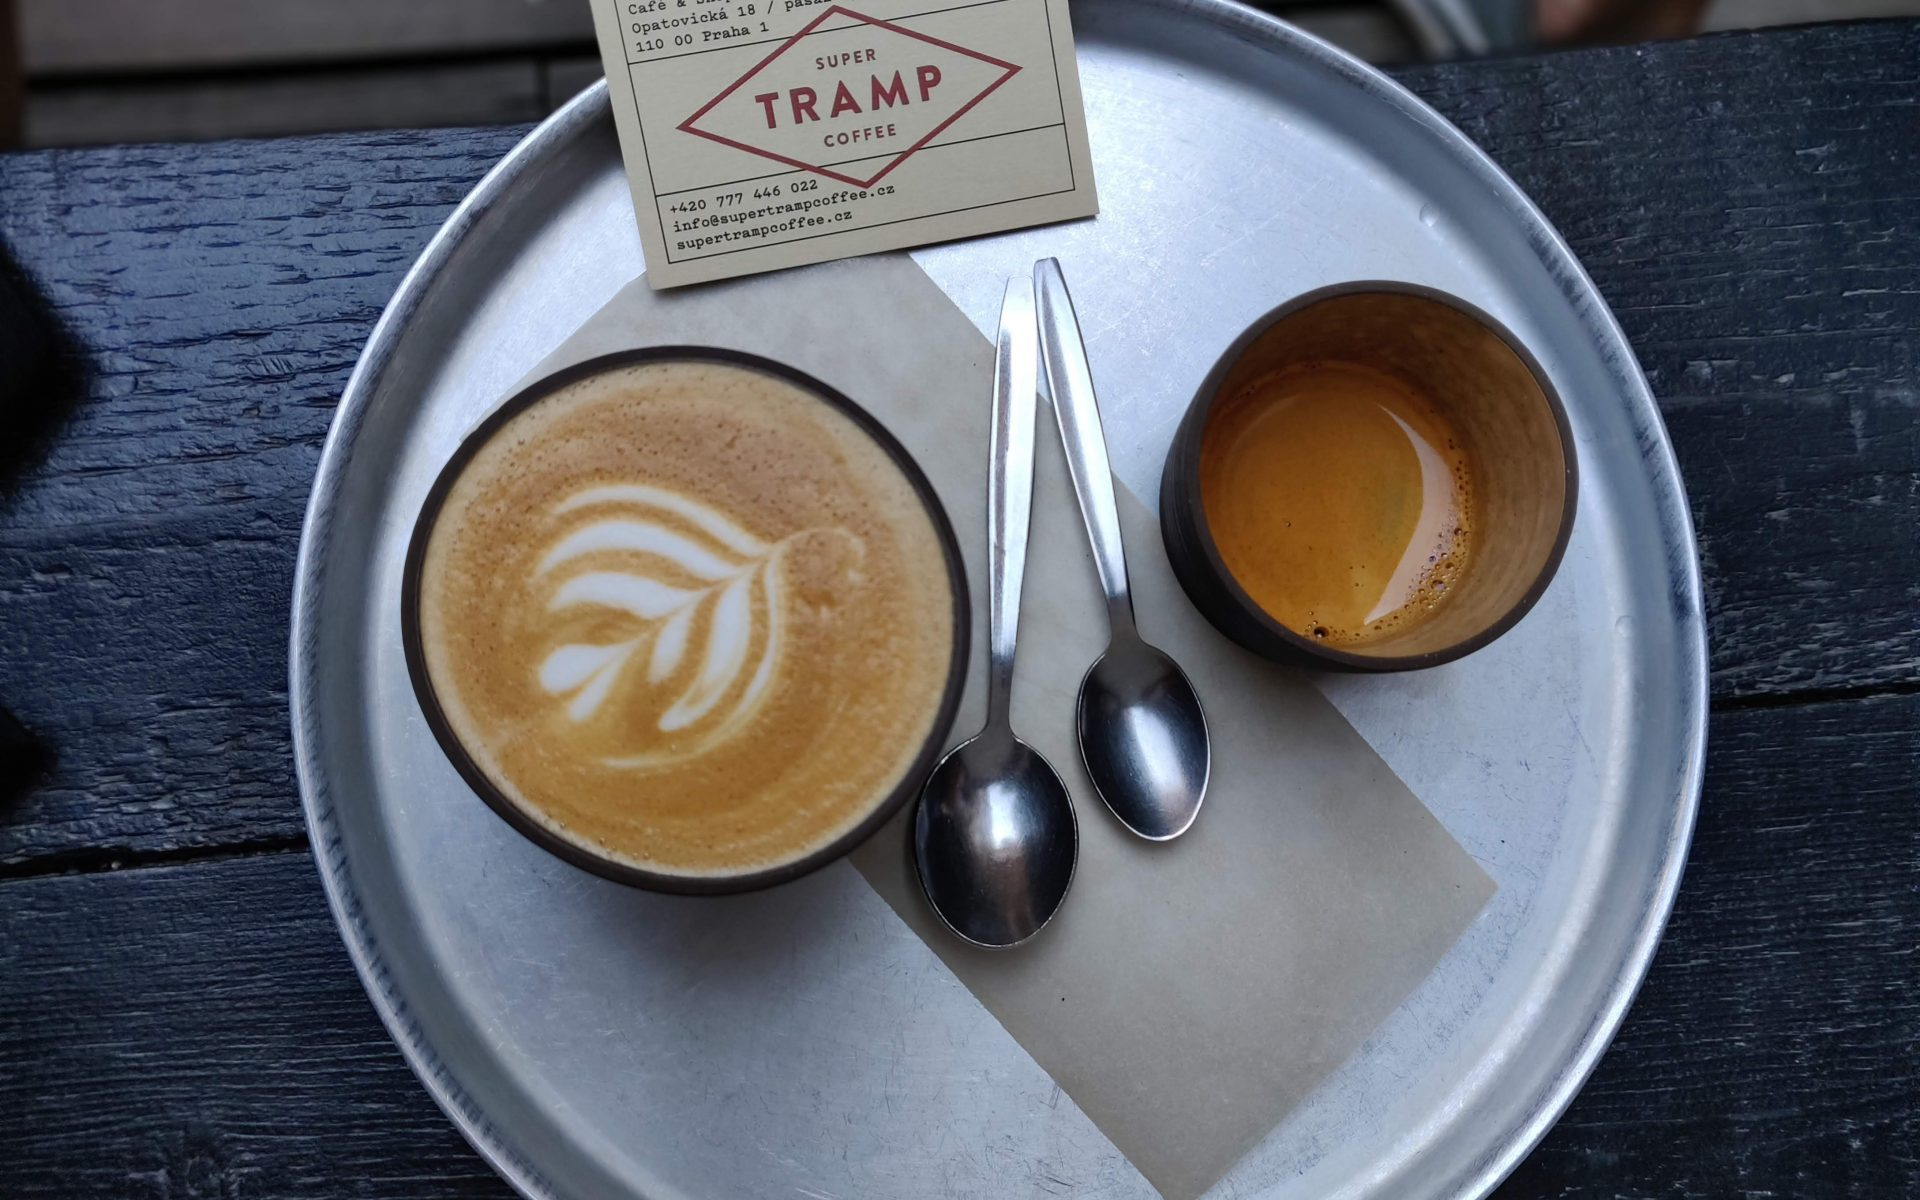 Super Tramp Coffee